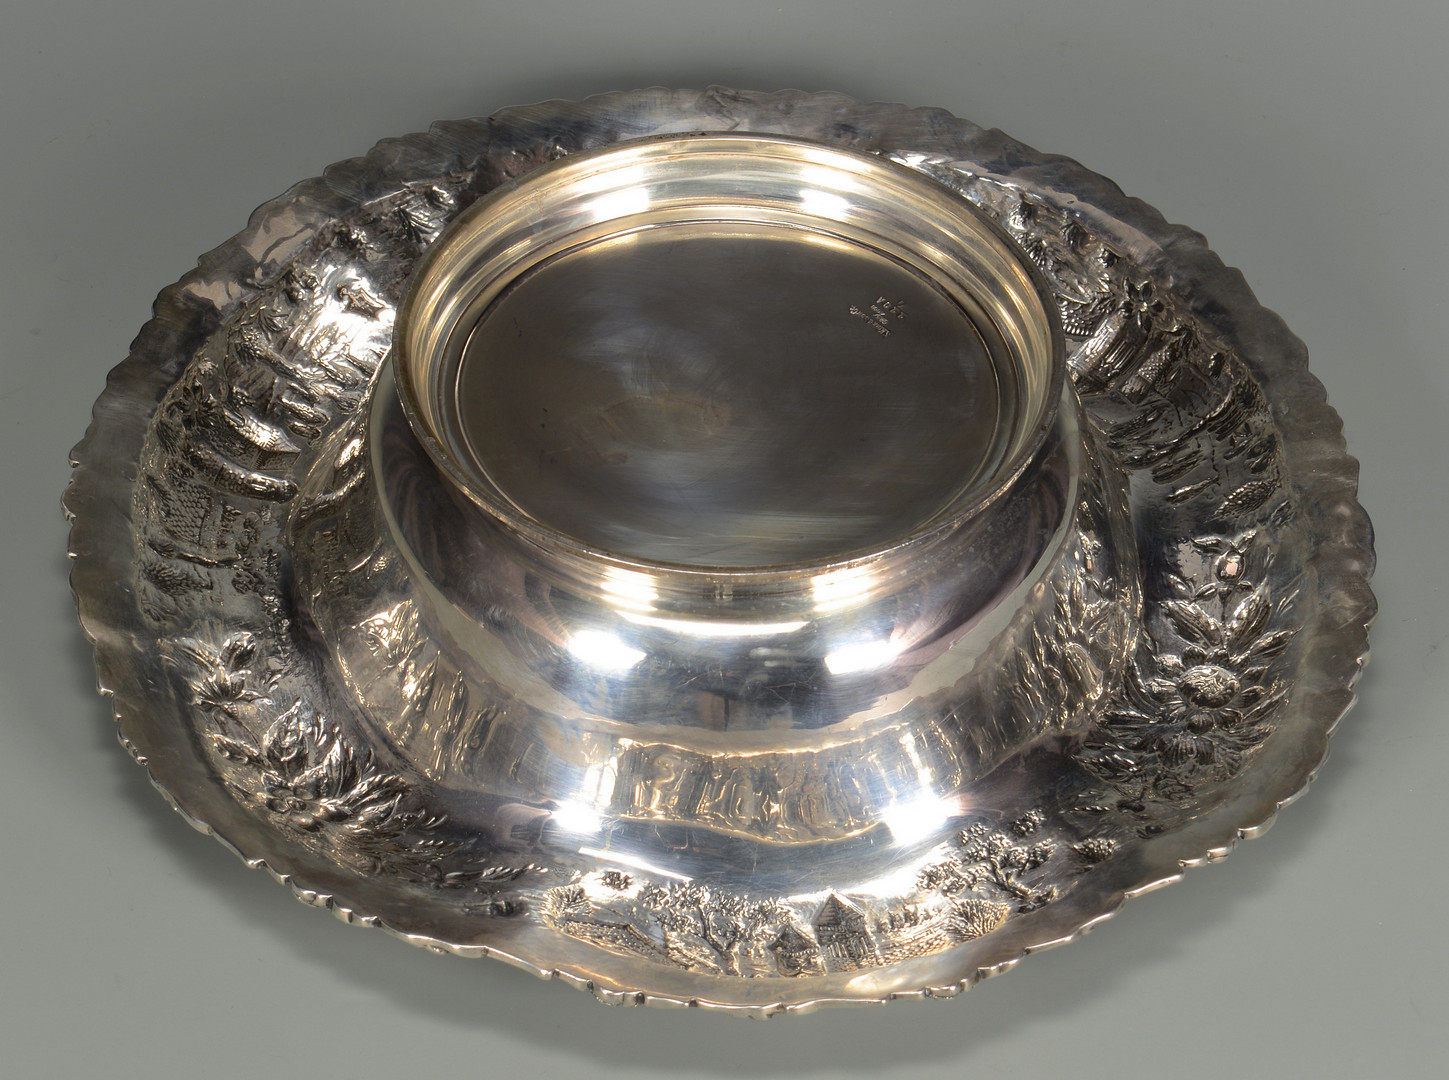 Lot 33: Kirk Centerpiece Bowl, Castle pattern